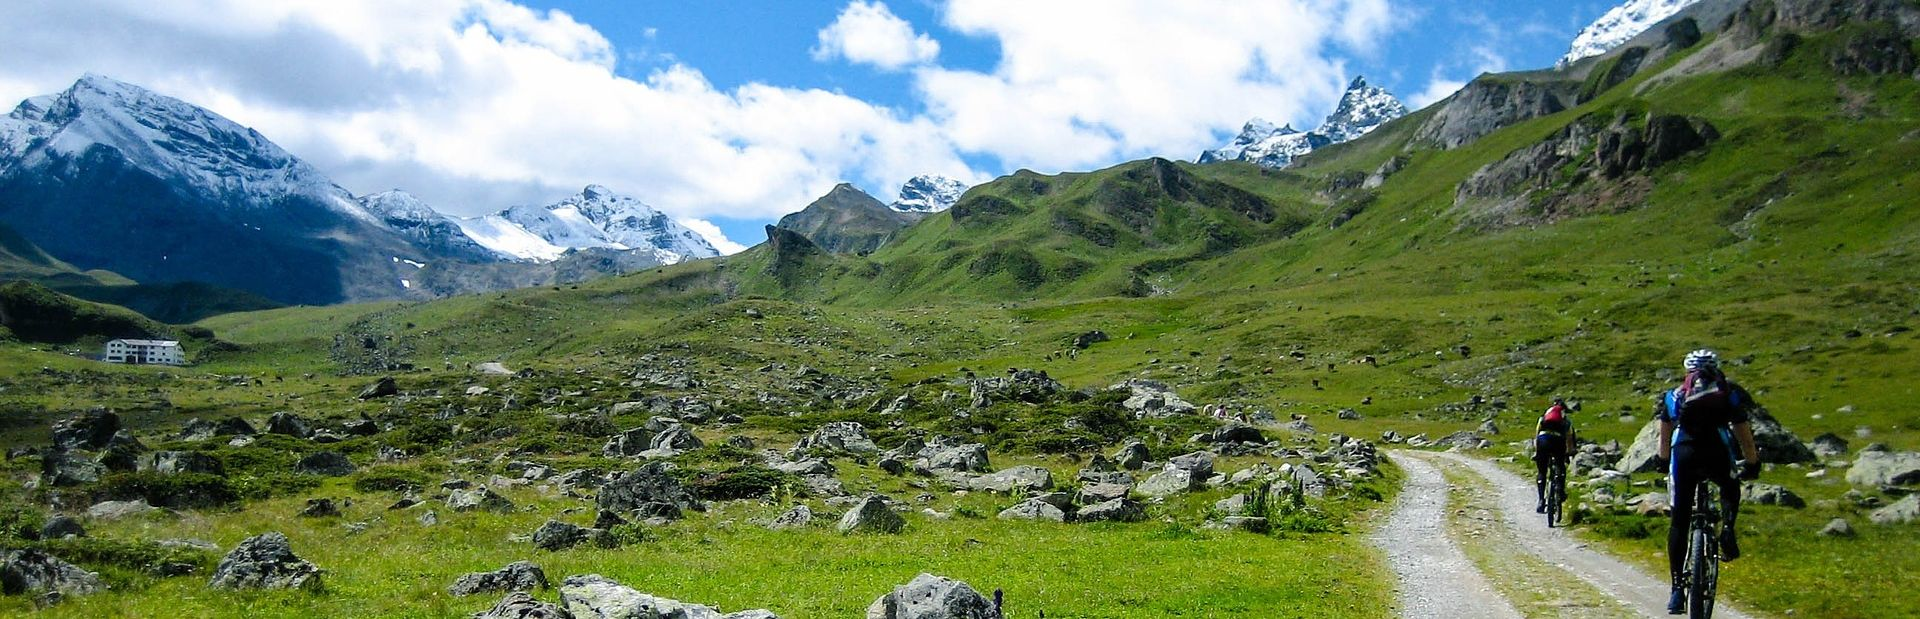 10 Must Have Items For Trekking in Nepal